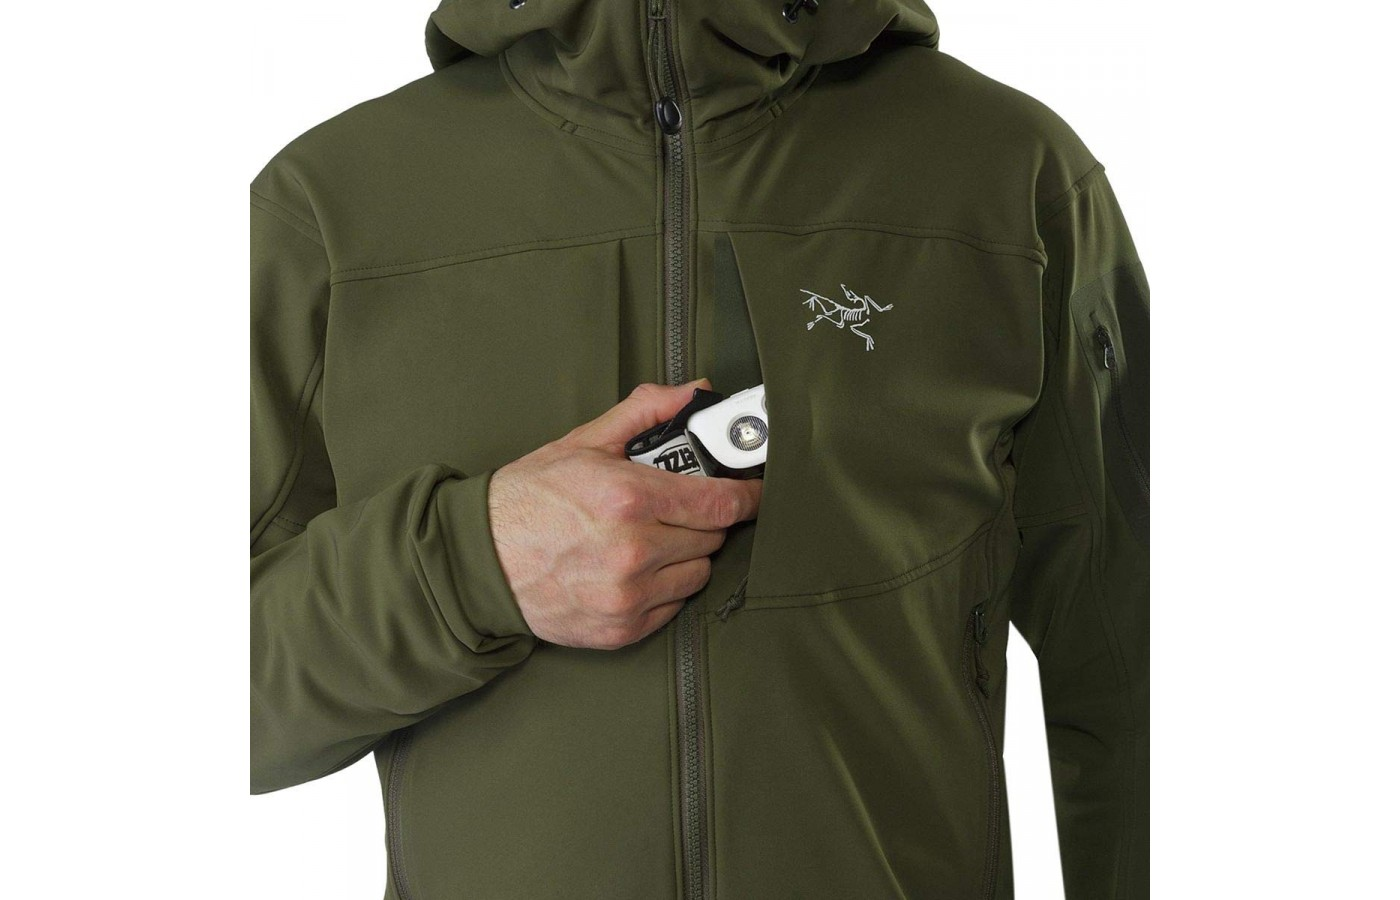 The Gamma MX Hood has zip closure chest pockets for storage